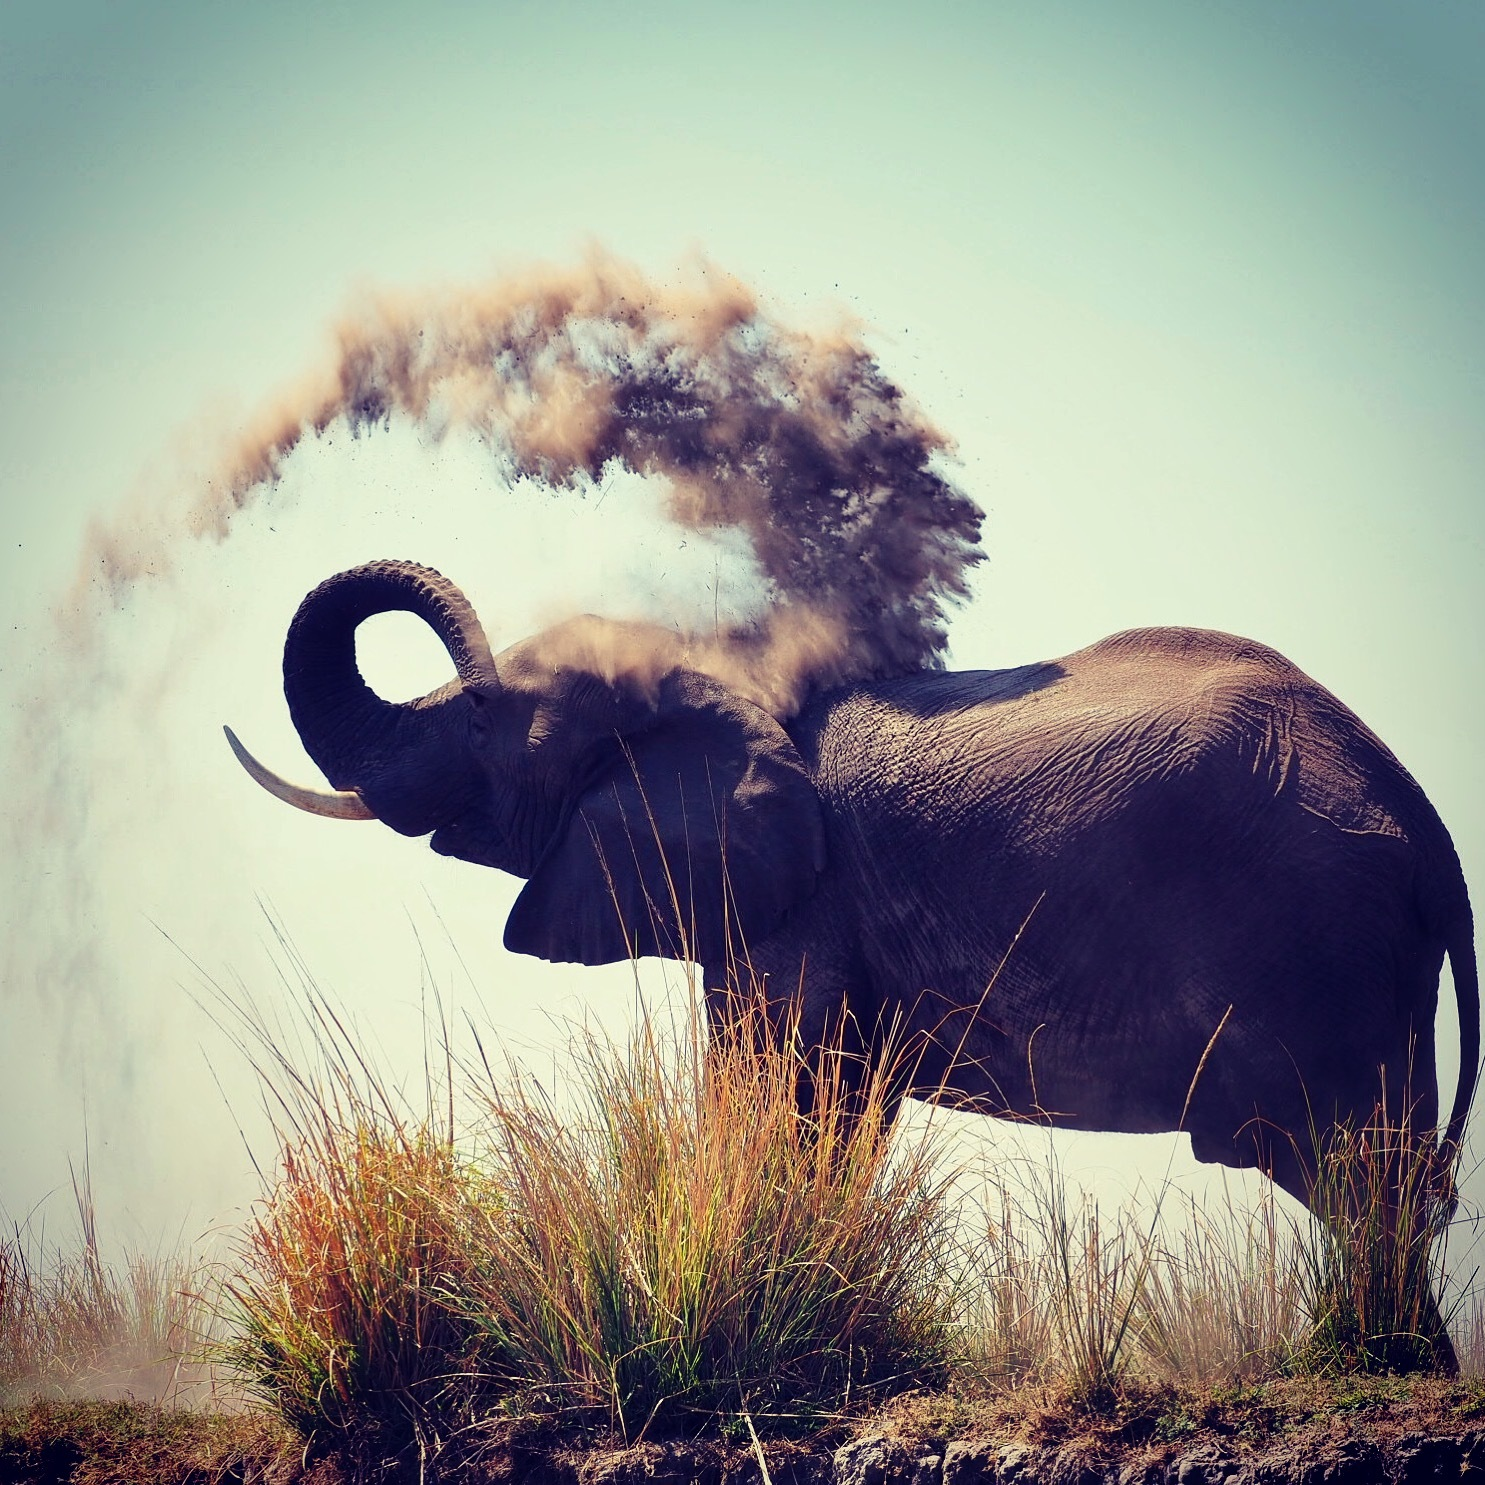 Dust bath  by kirsten.keun